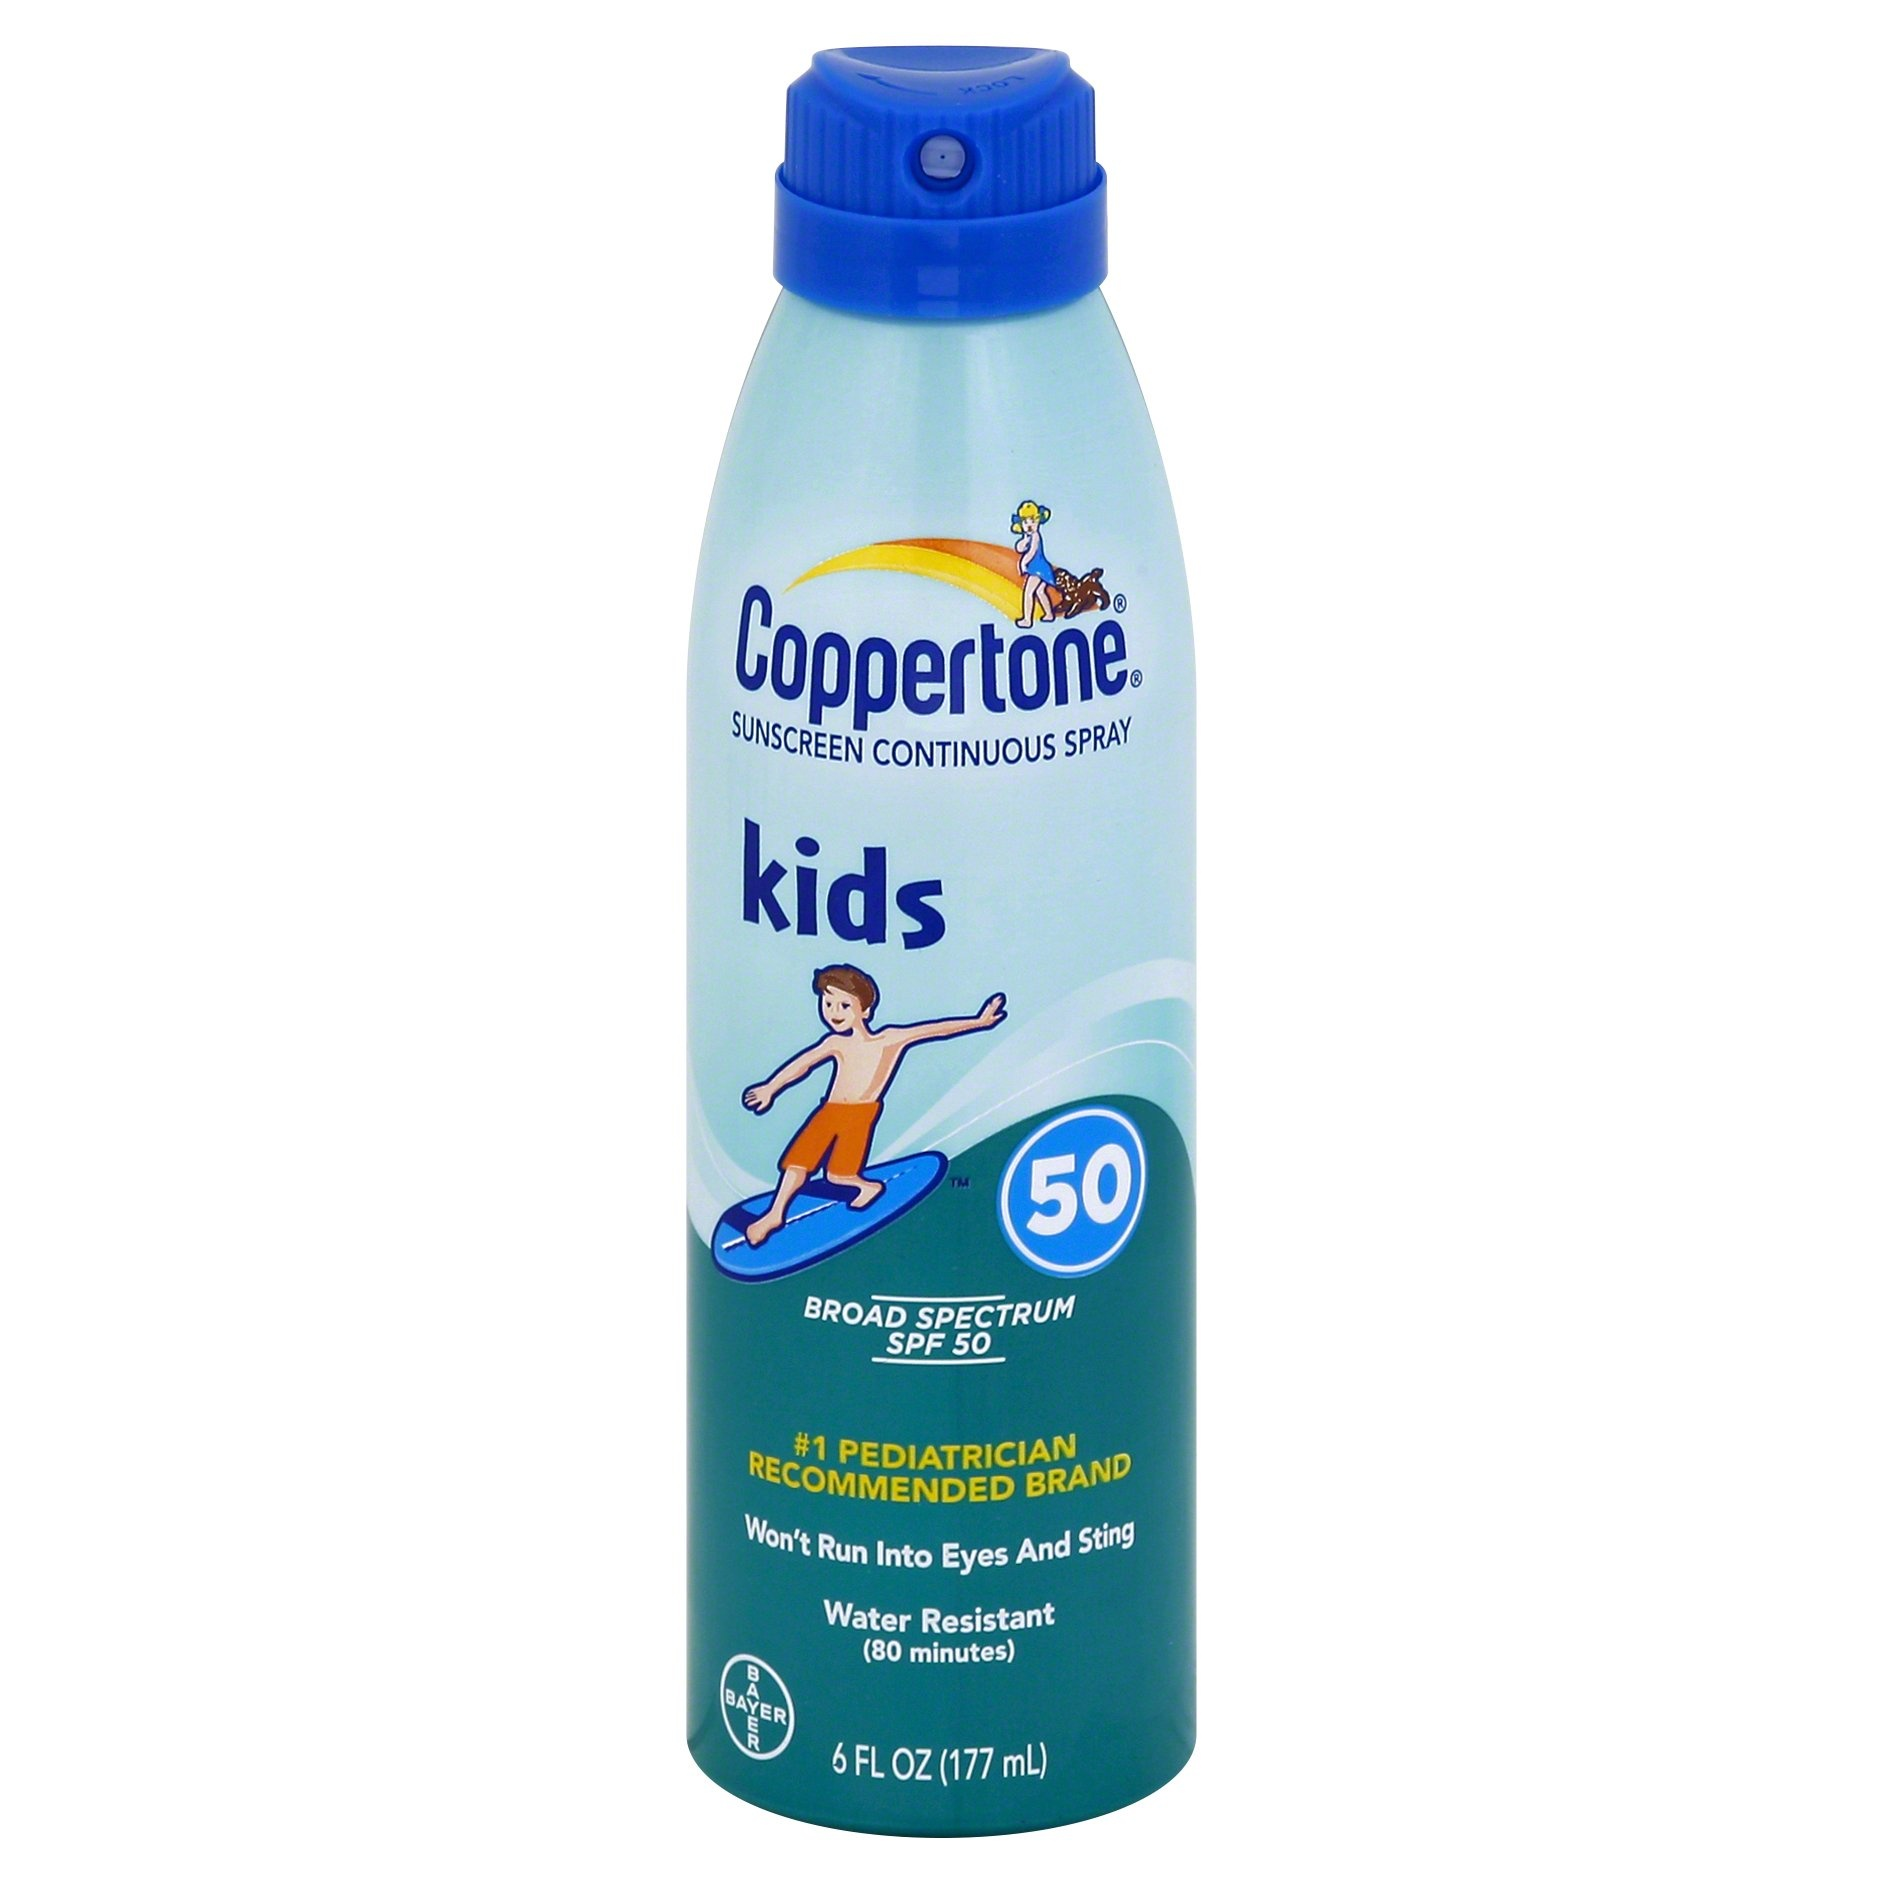 slide 1 of 9, Coppertone Kids Broad Spectrum SPF 50 Sunscreen Continuous Spray,